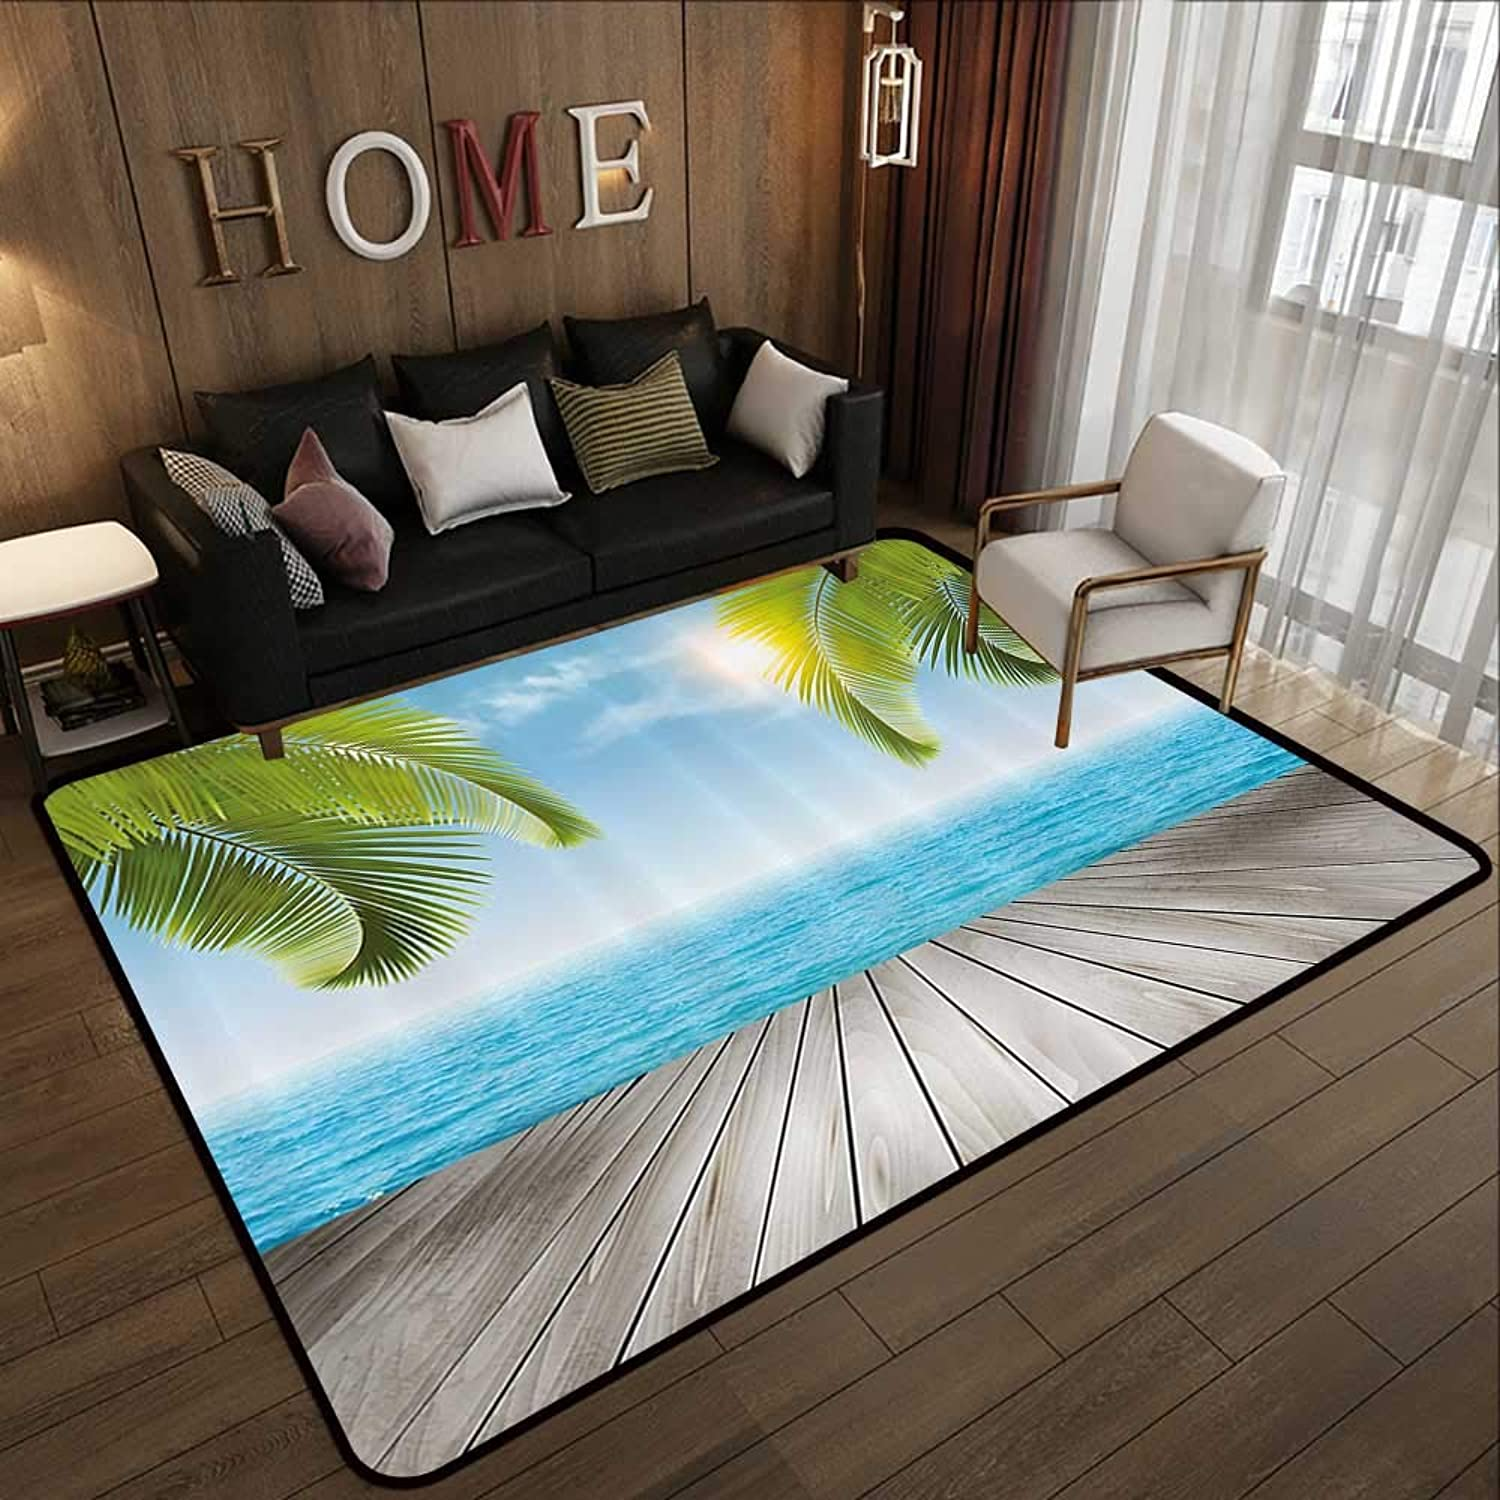 Floor mat,Beach,Tropical Exotic Seashore with Palm Trees Sunny Day Summertime Vacation Theme,Aqua Green Grey 47 x 59  Indoor Outdoor Rubber Mat